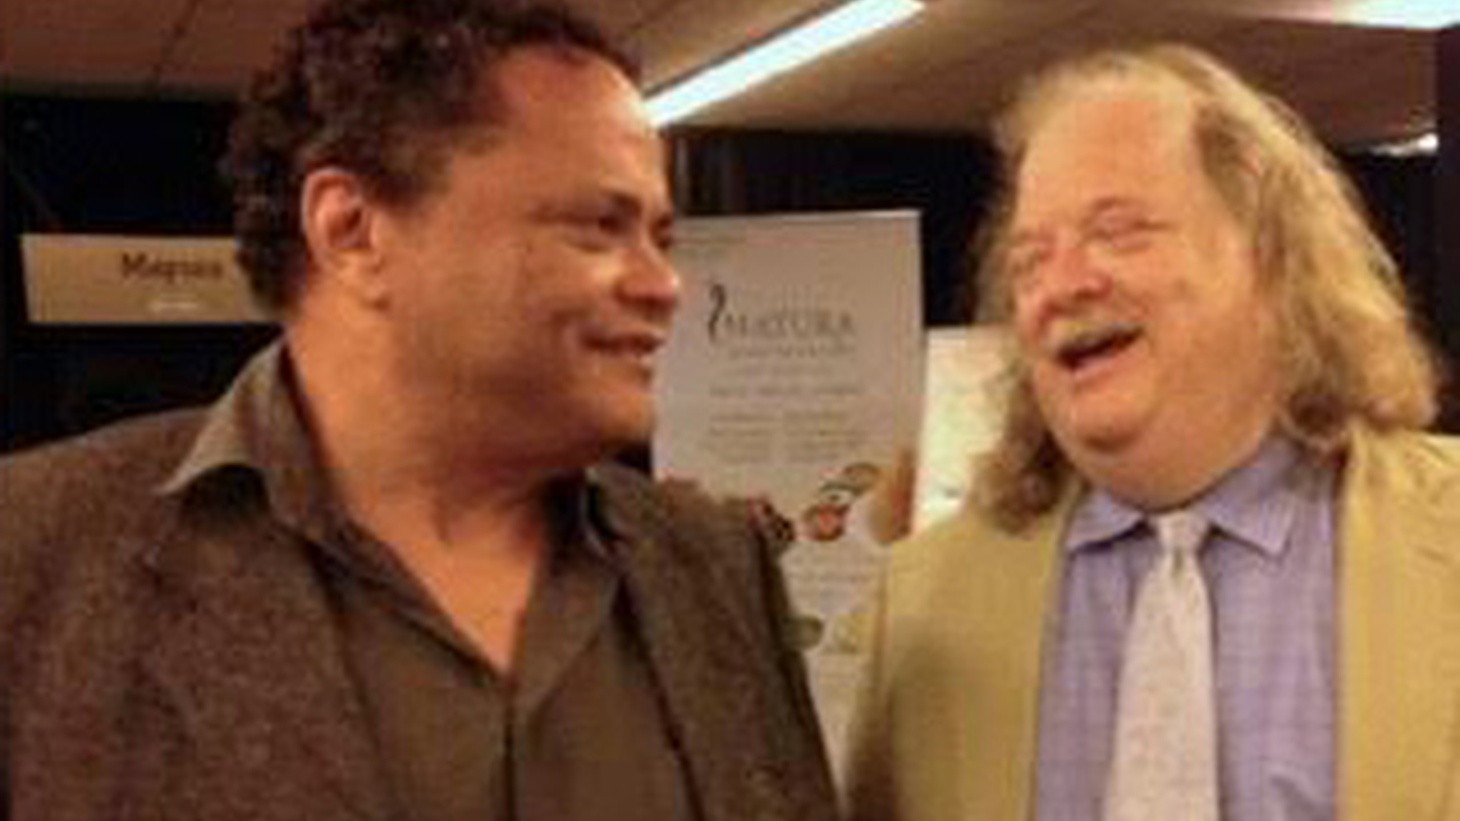 Journalist Jervey Tervalon remembers his long friendship with late food critic Jonathan Gold in a poem.